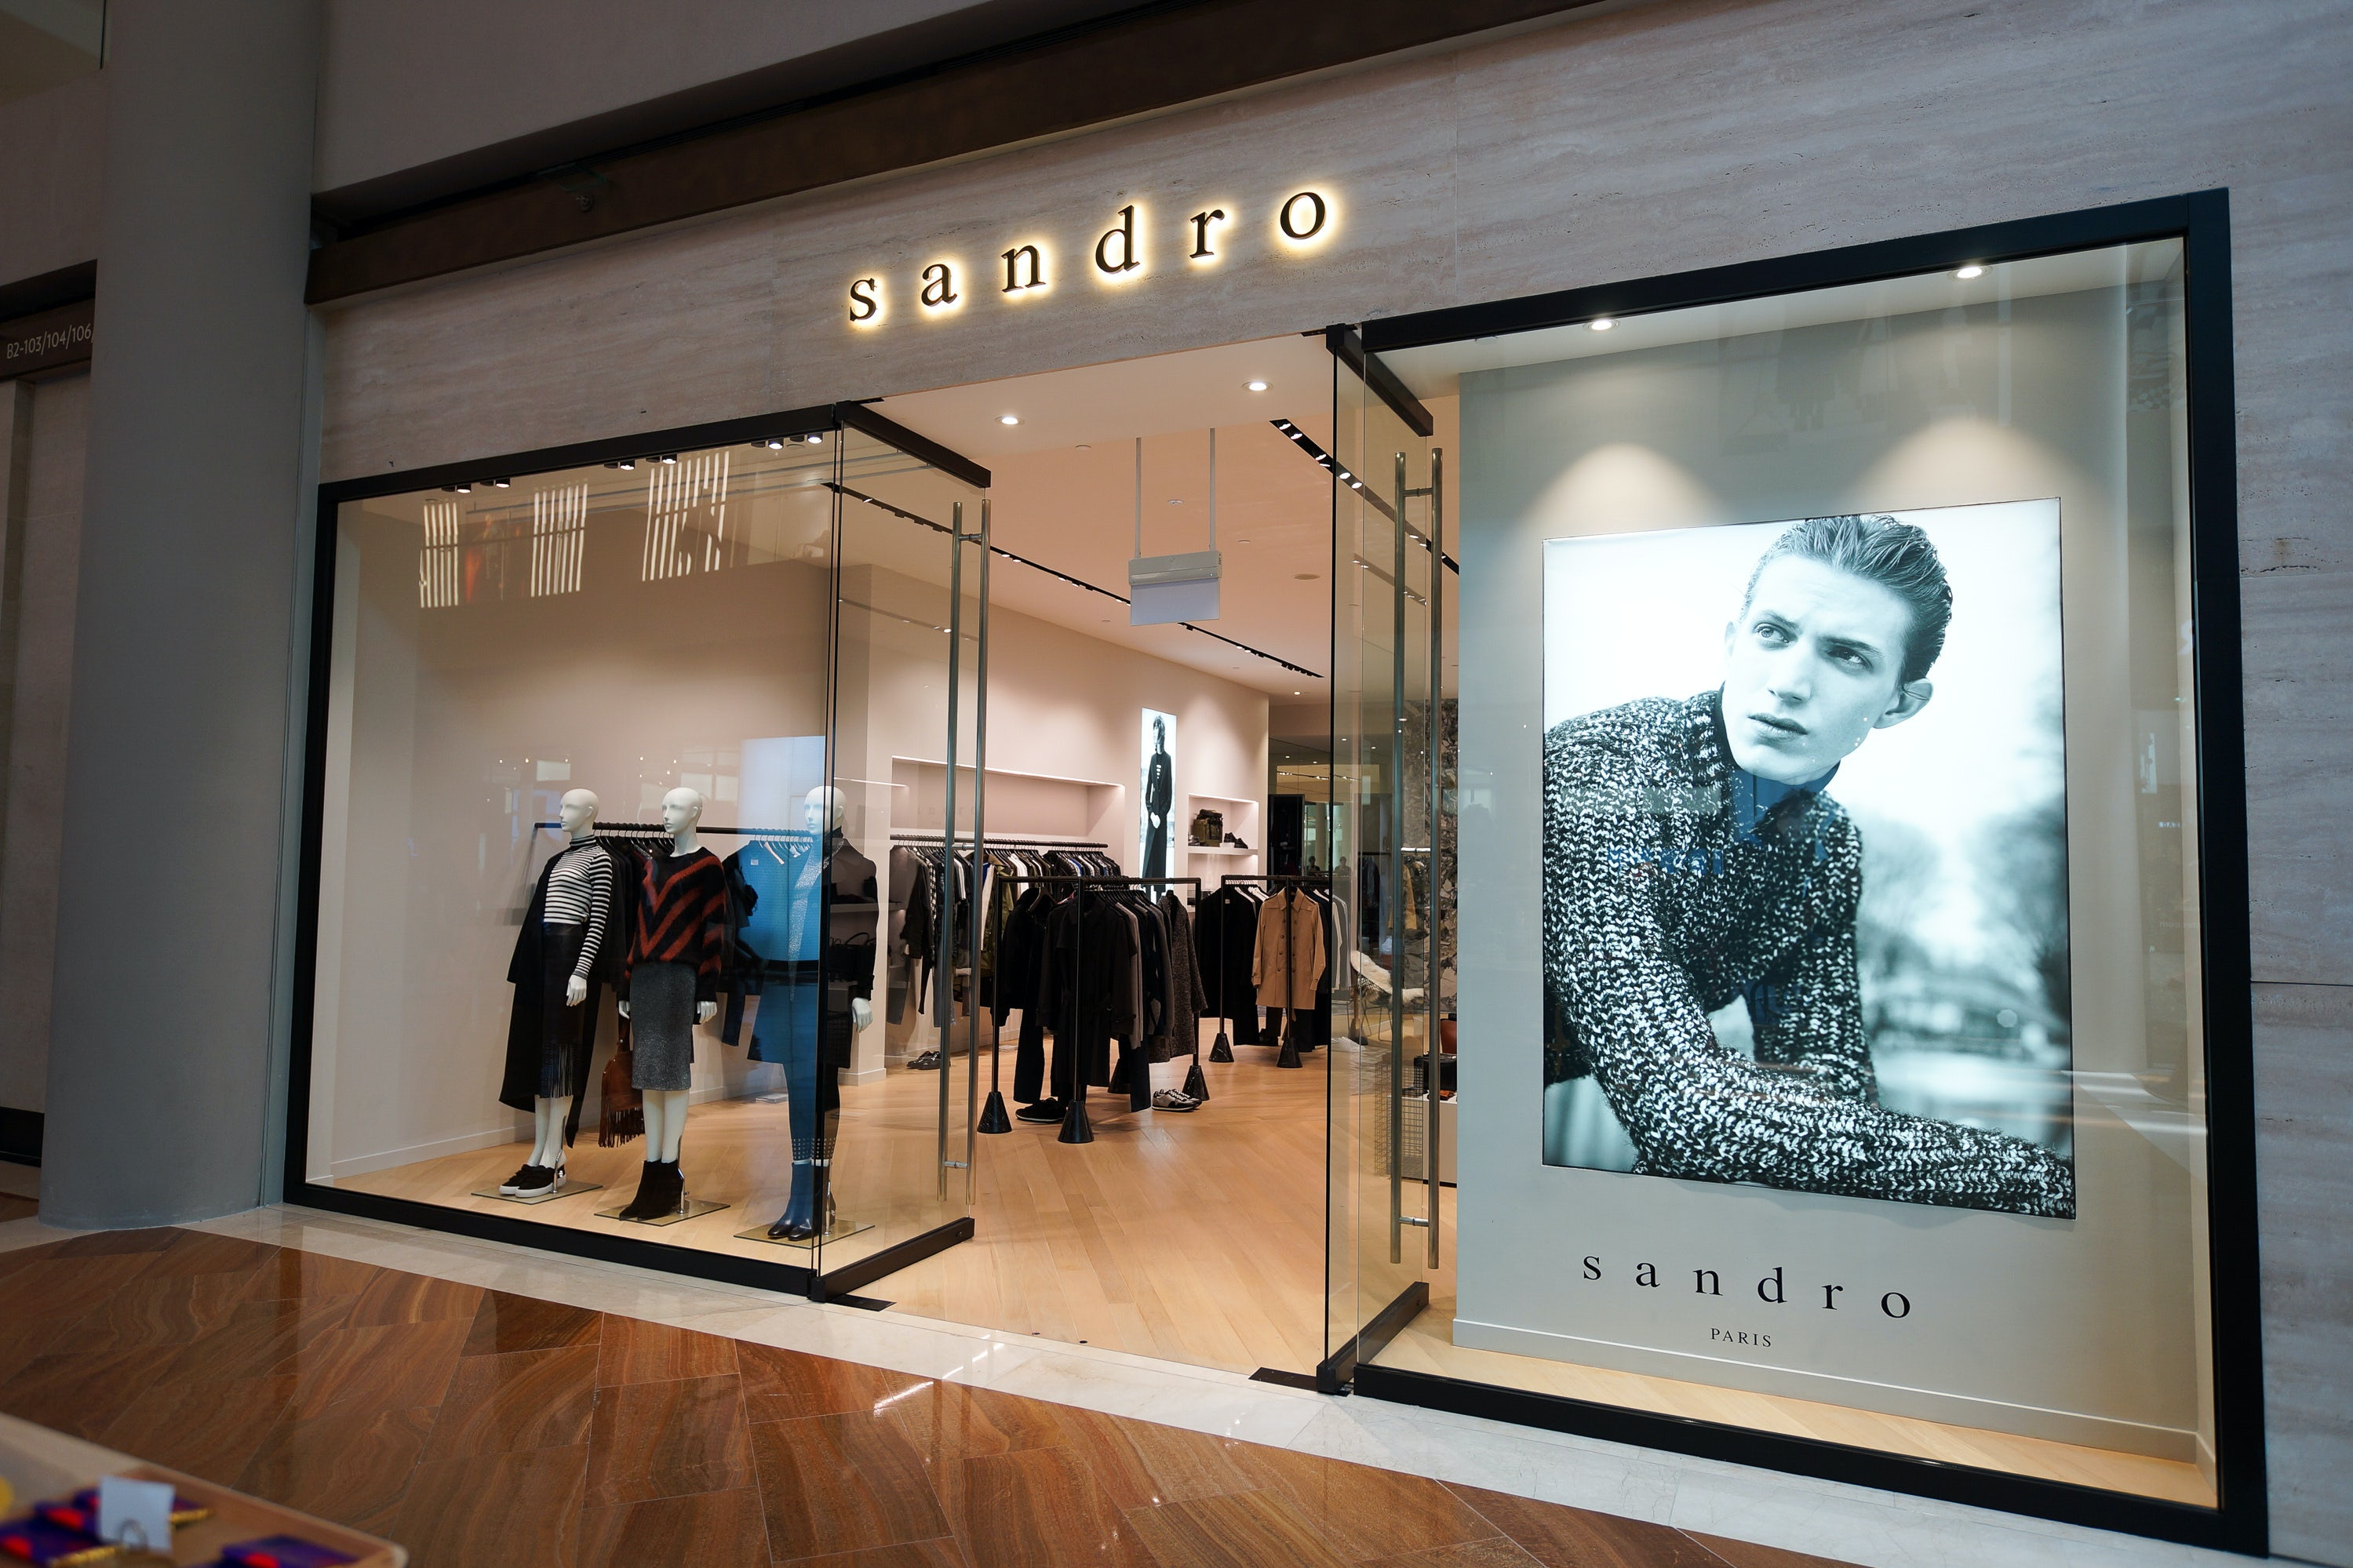 A Sandro store | Source: Shutterstock